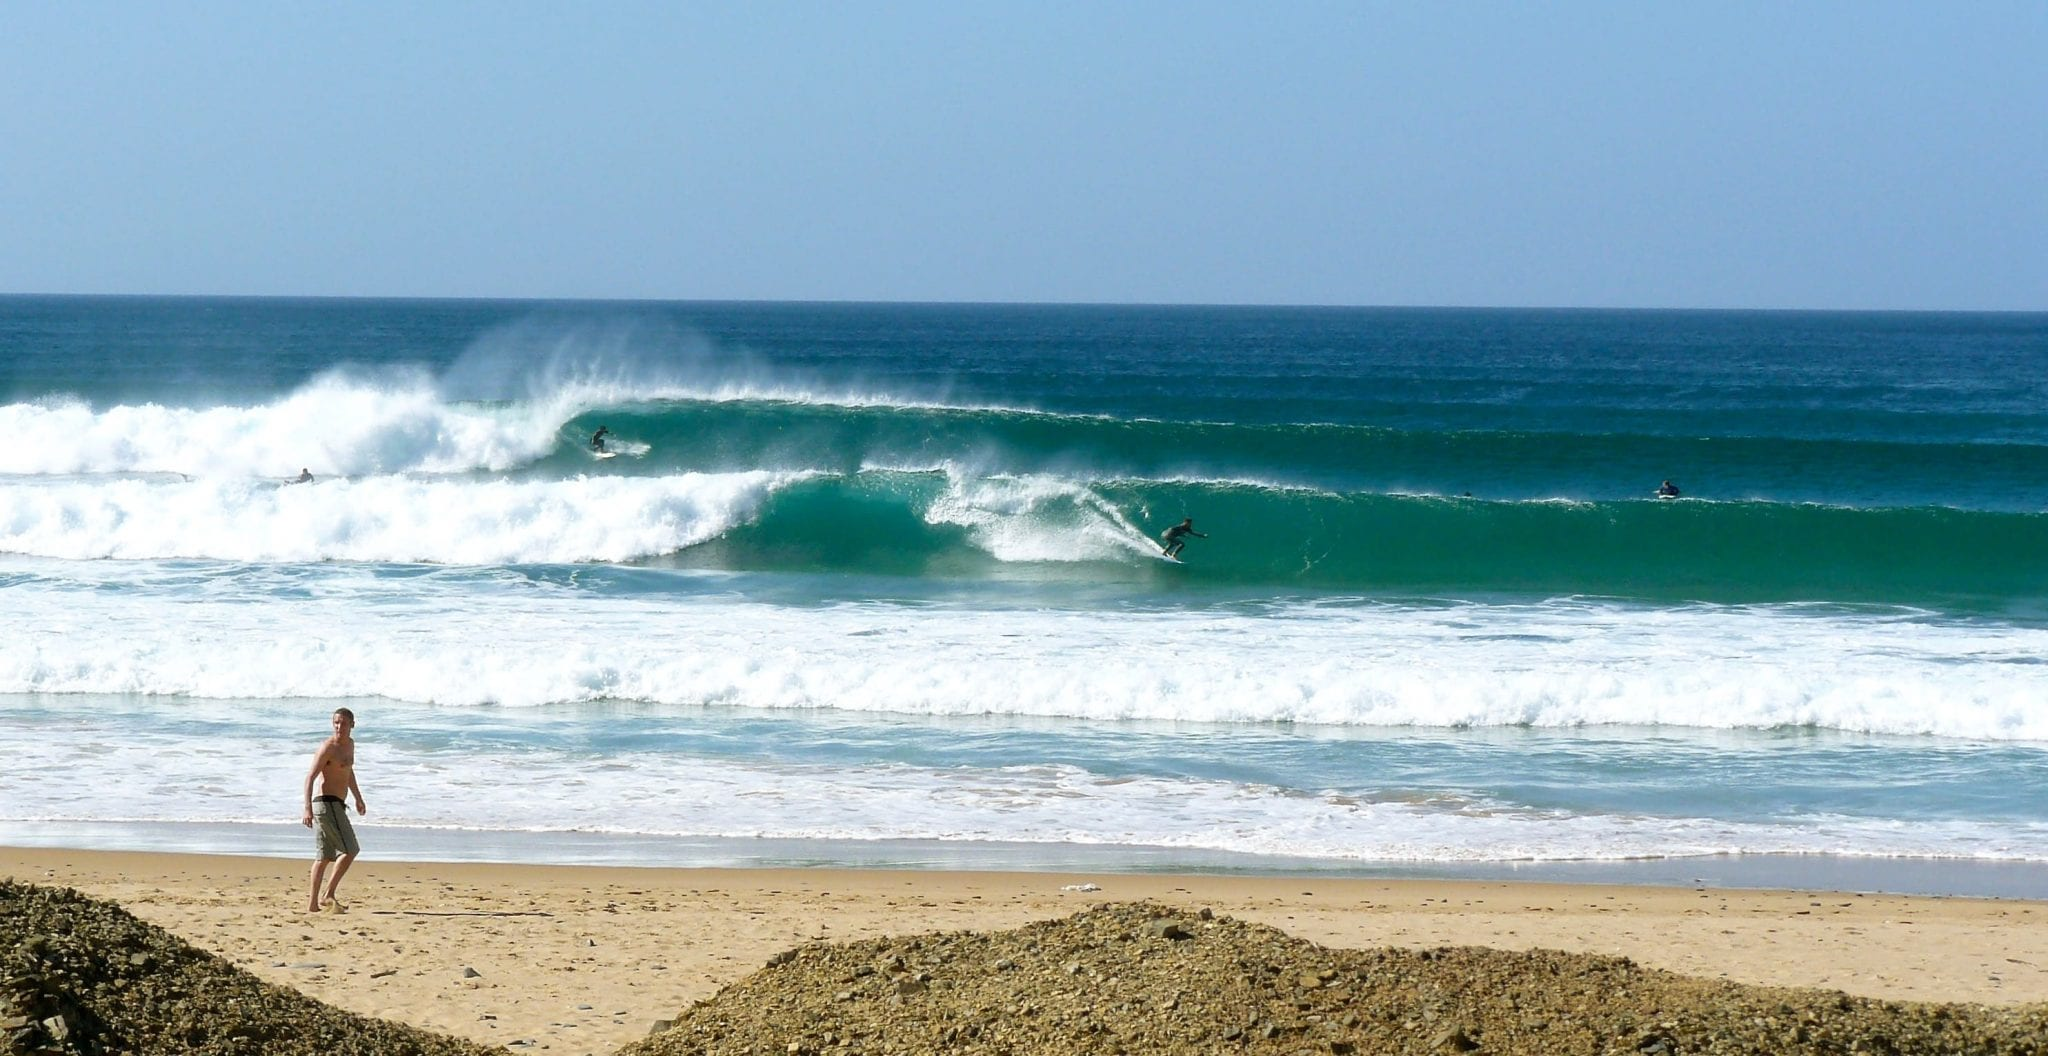 Cordoama best surfsession Algarve Surf GuIde Infotext